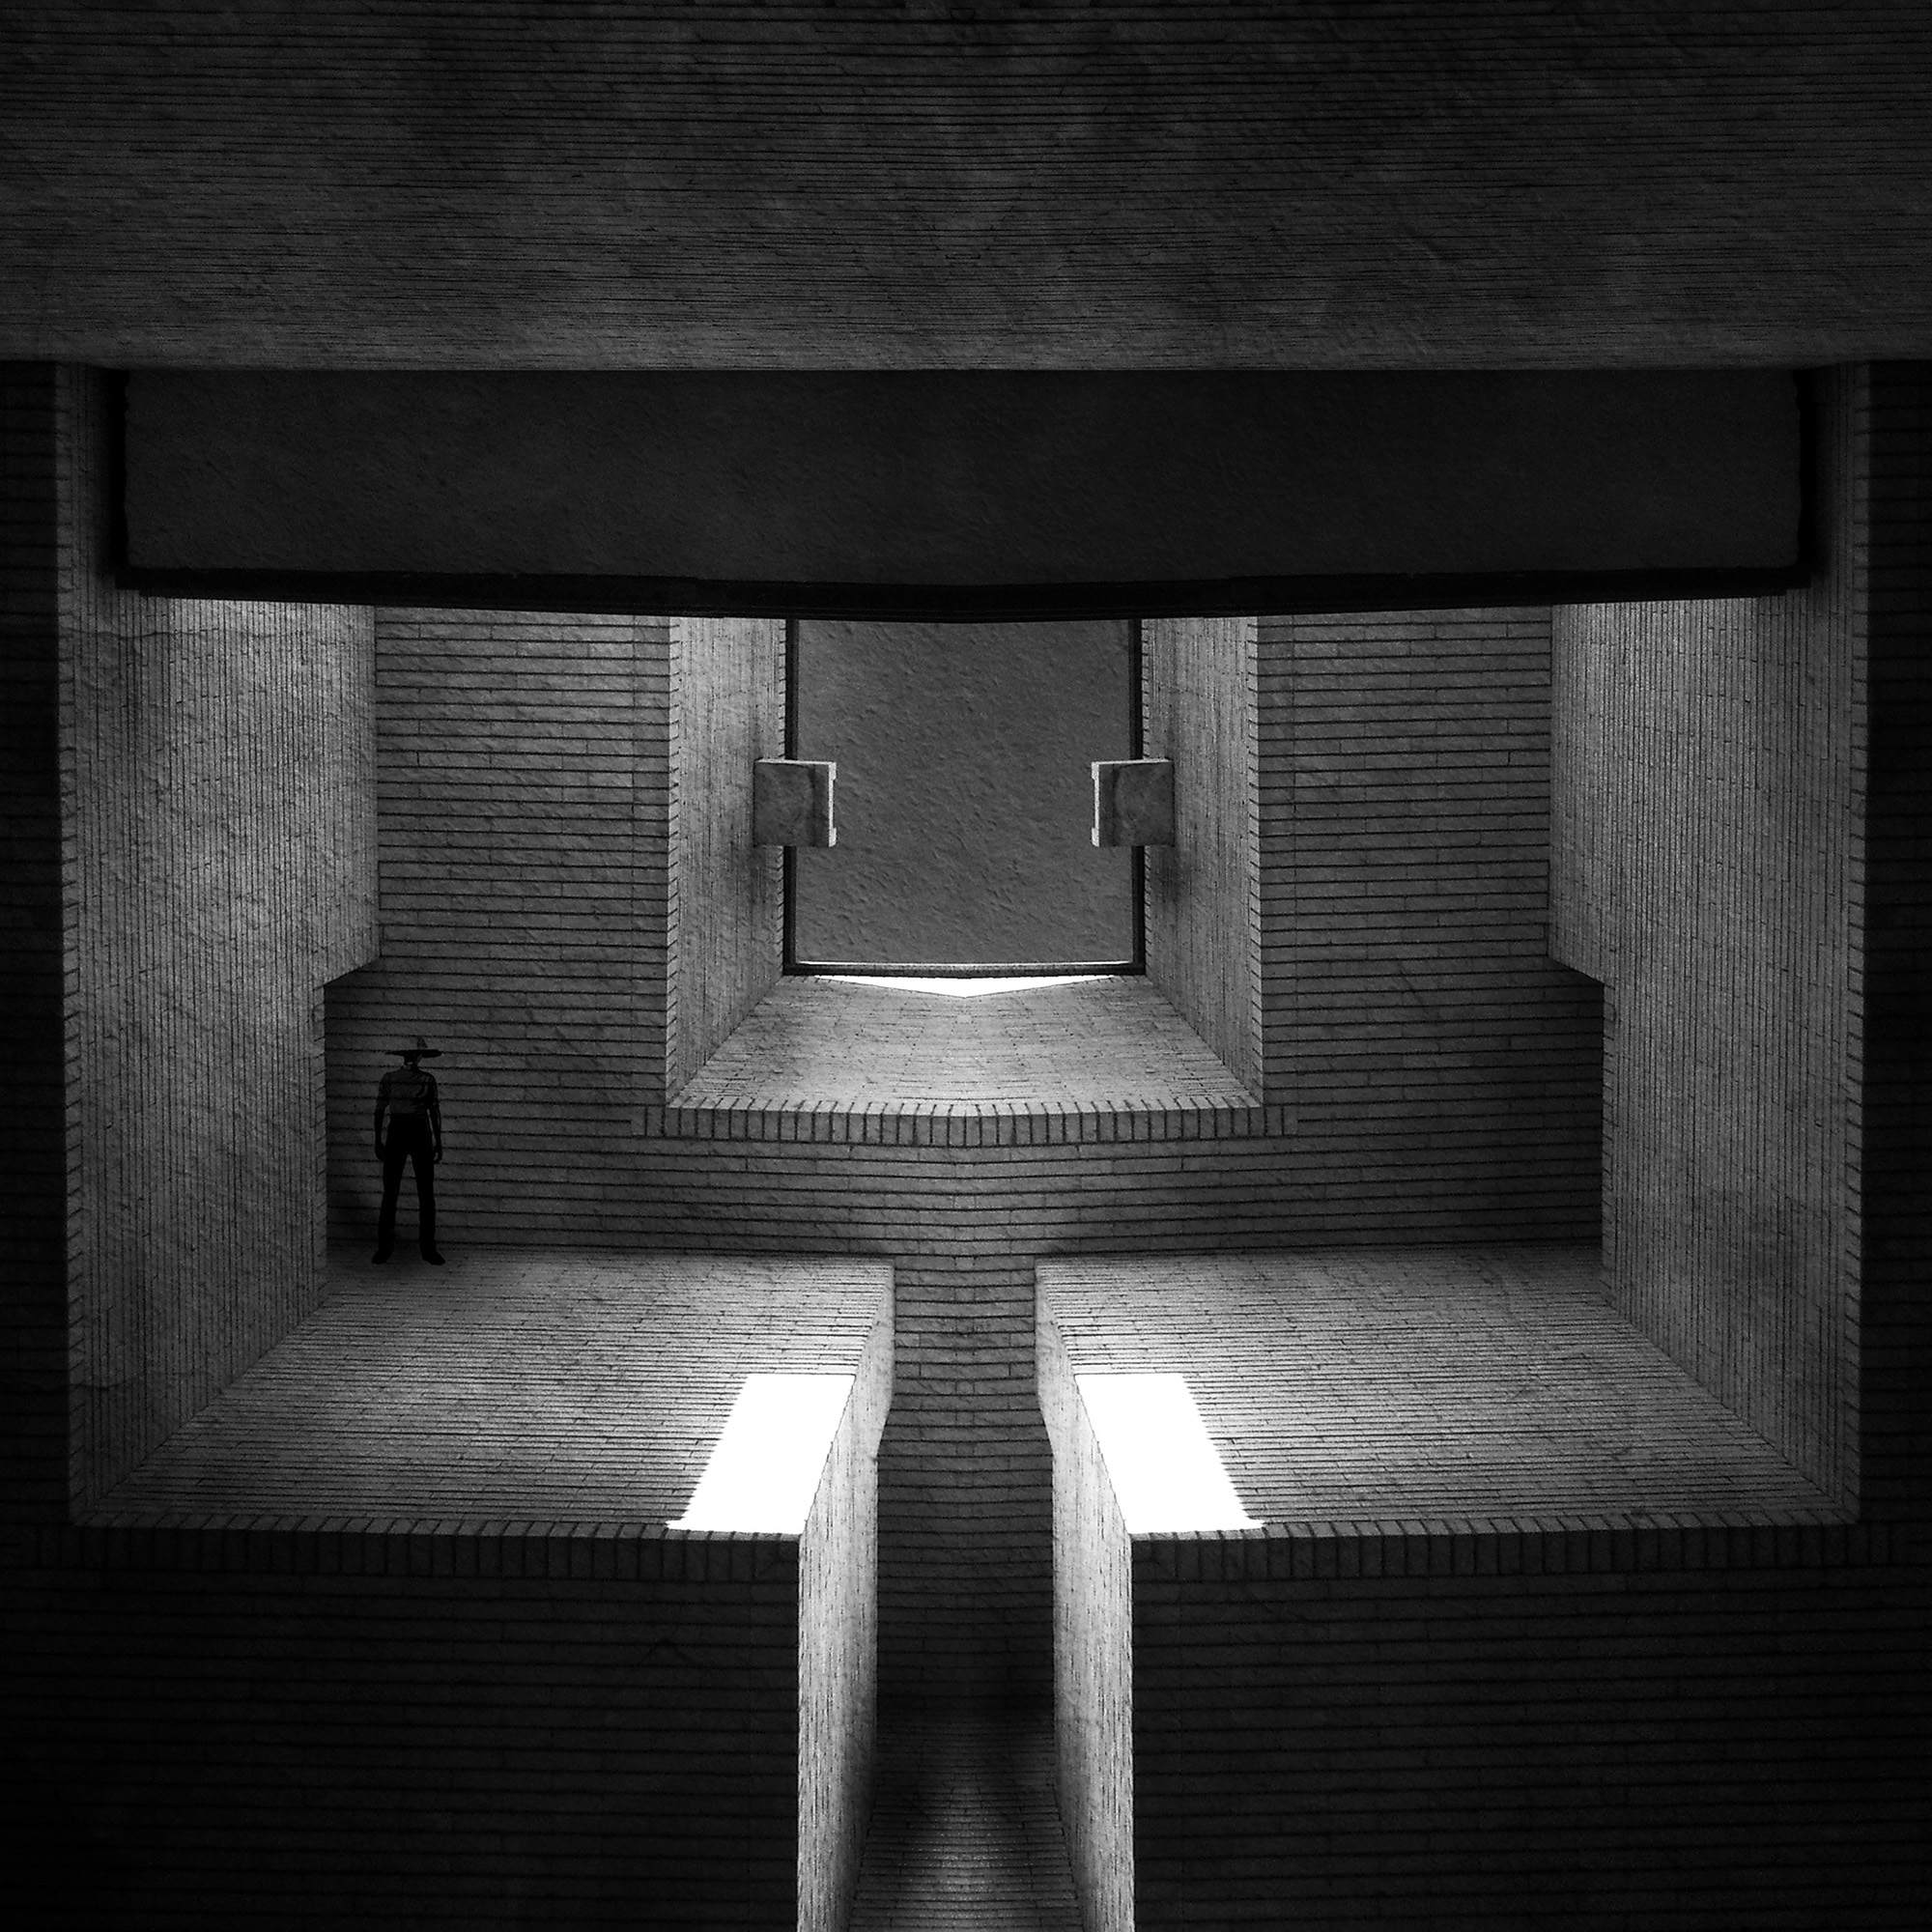 Milad_Safabakhsh_The spce in between By Milad safabakhsh (9).jpg